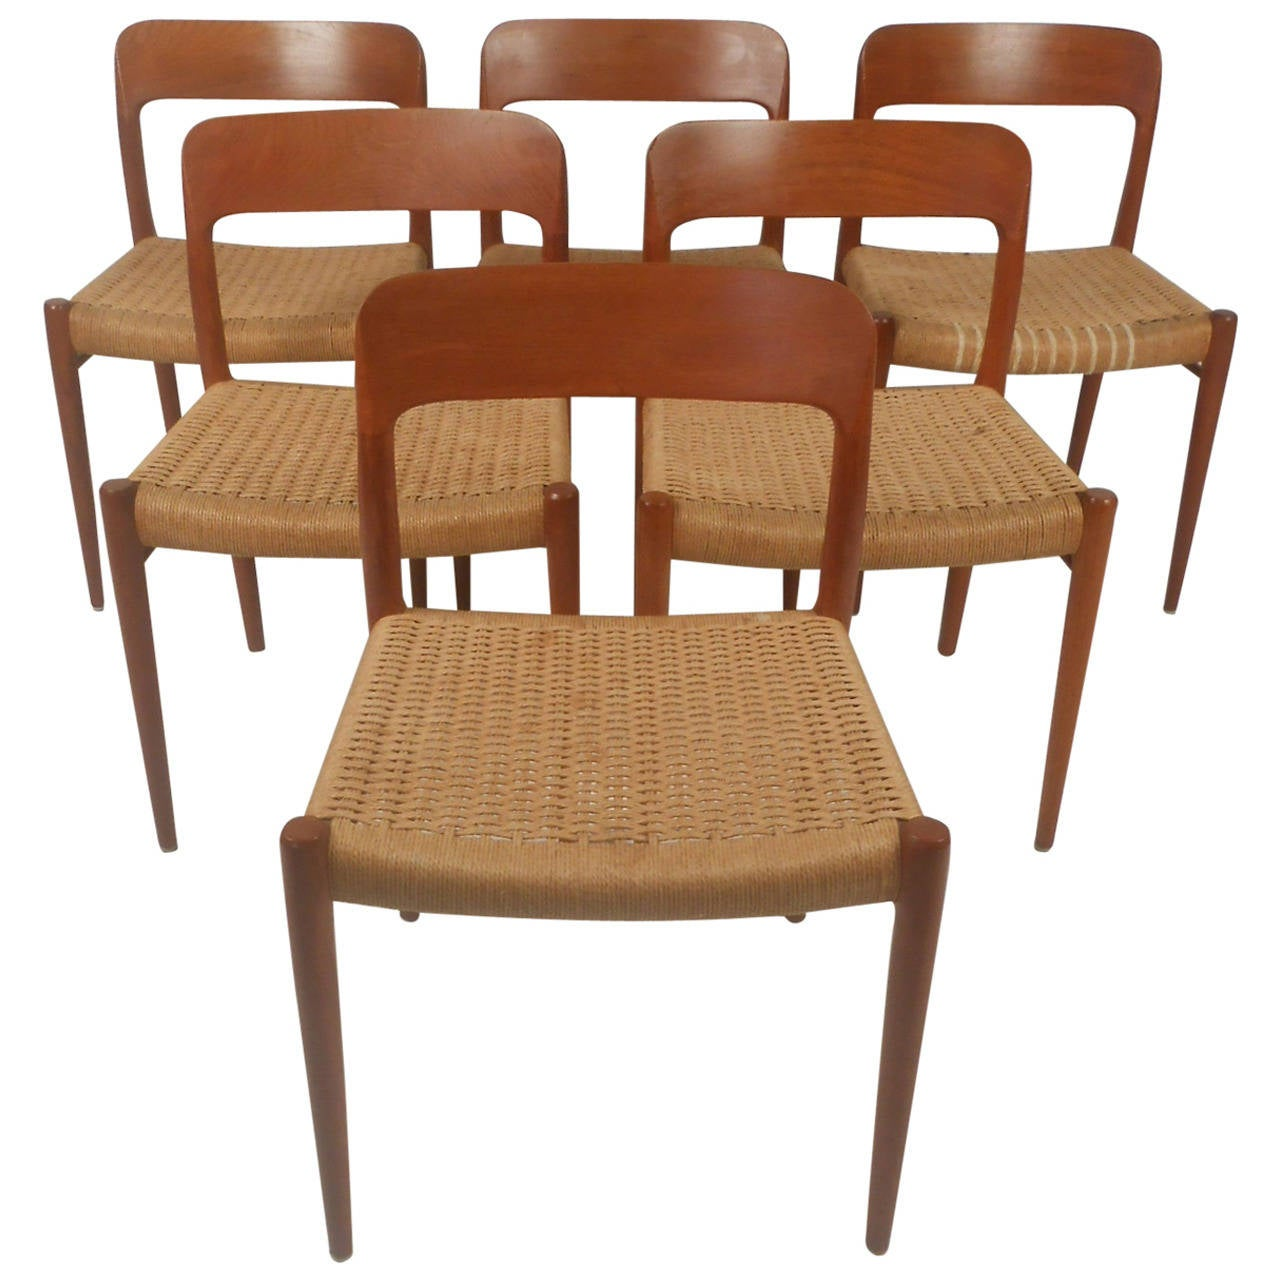 N. O. Moller Danish Dining Chairs 1